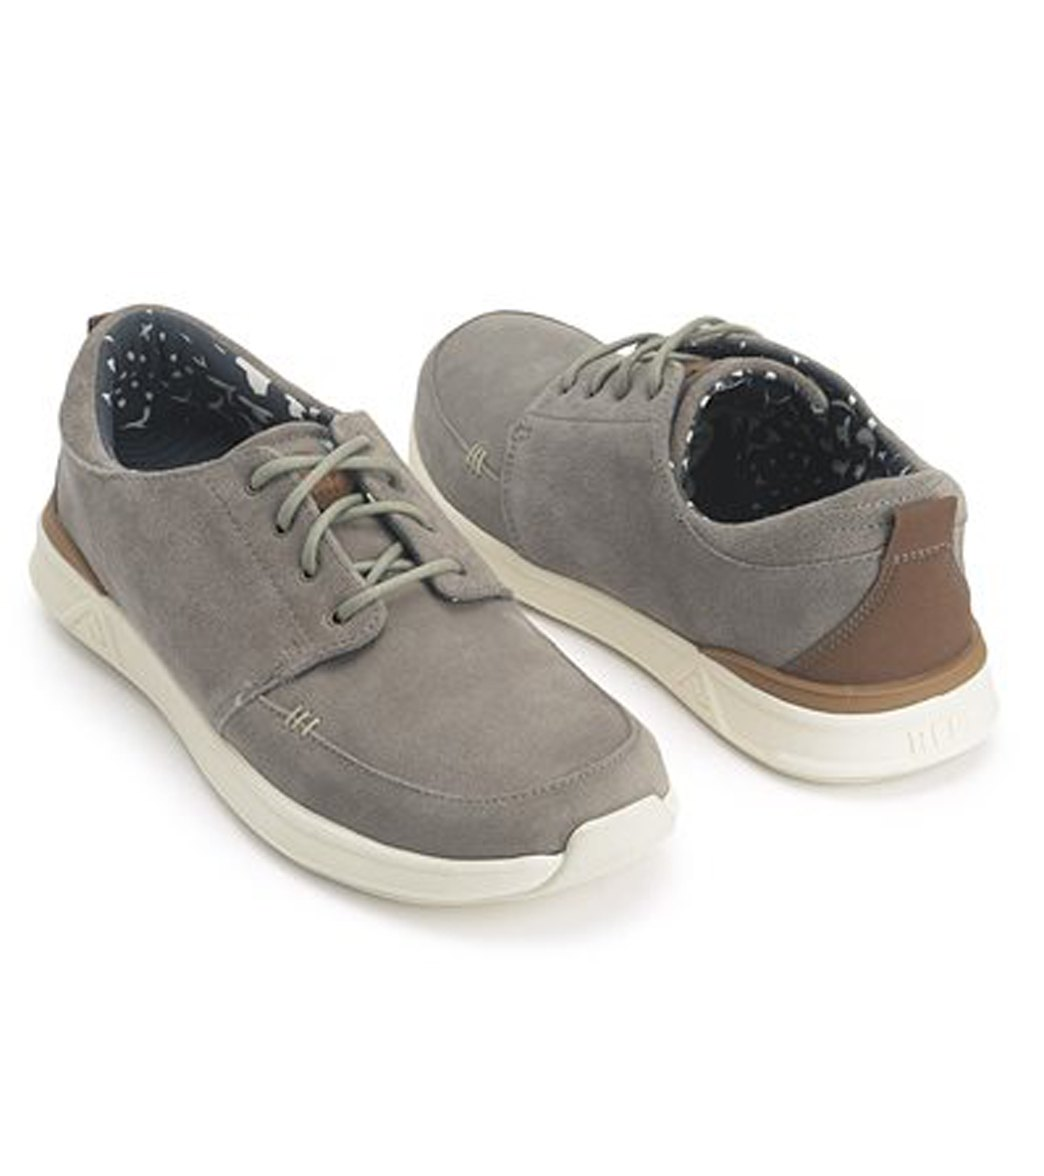 1d7852332c2 Reef Men s Reef Rover Low Premium at SwimOutlet.com - Free Shipping